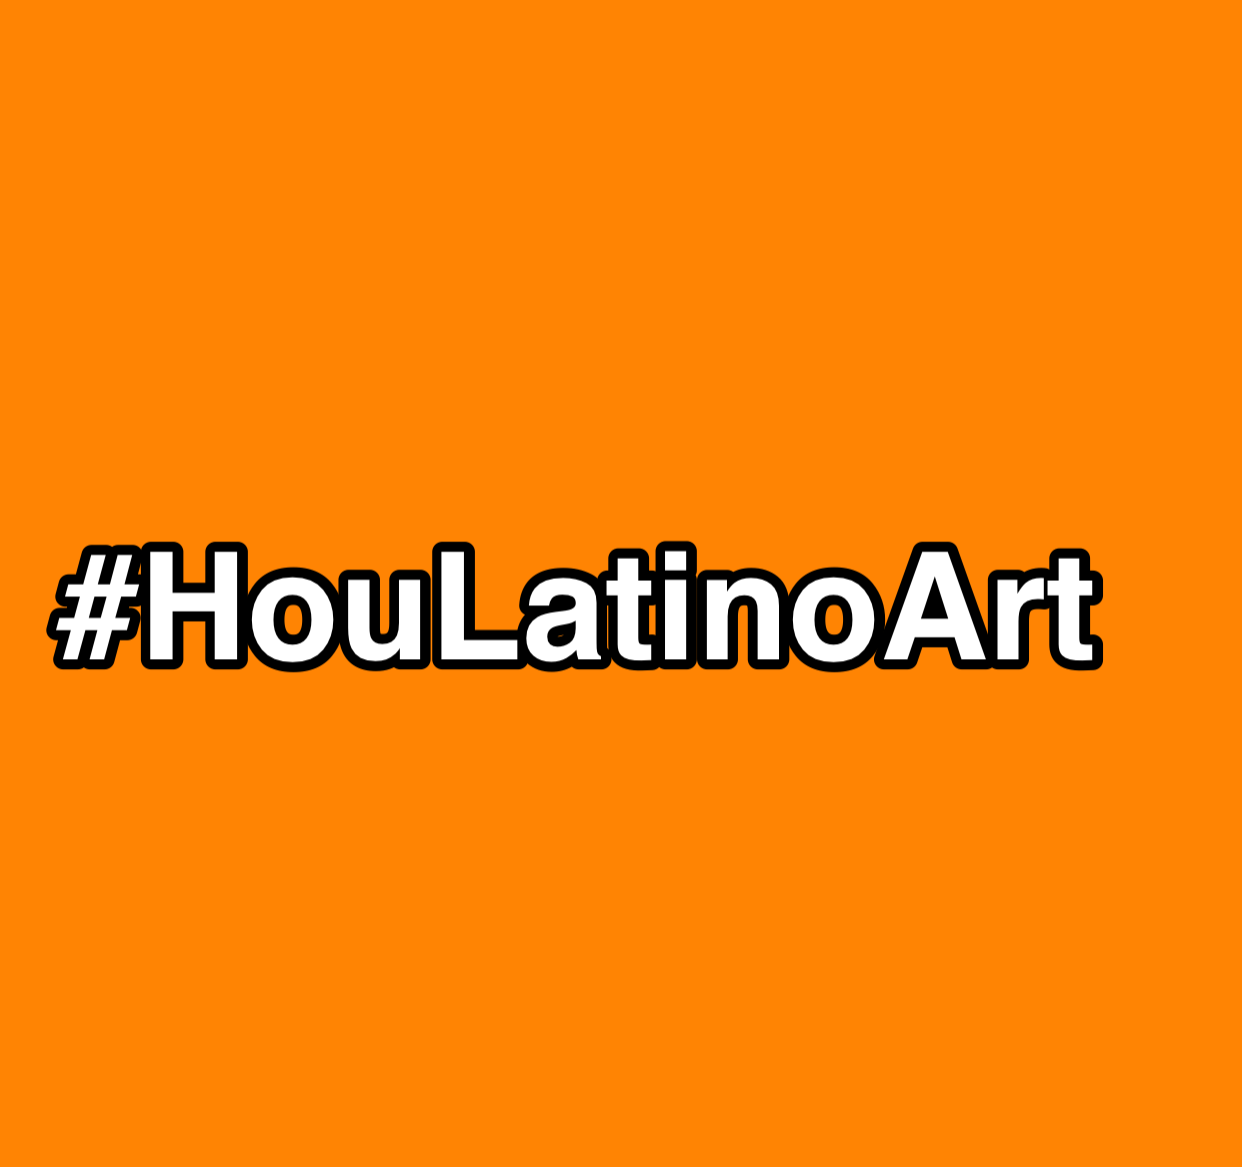 Put #HouLatinoArt On The Map